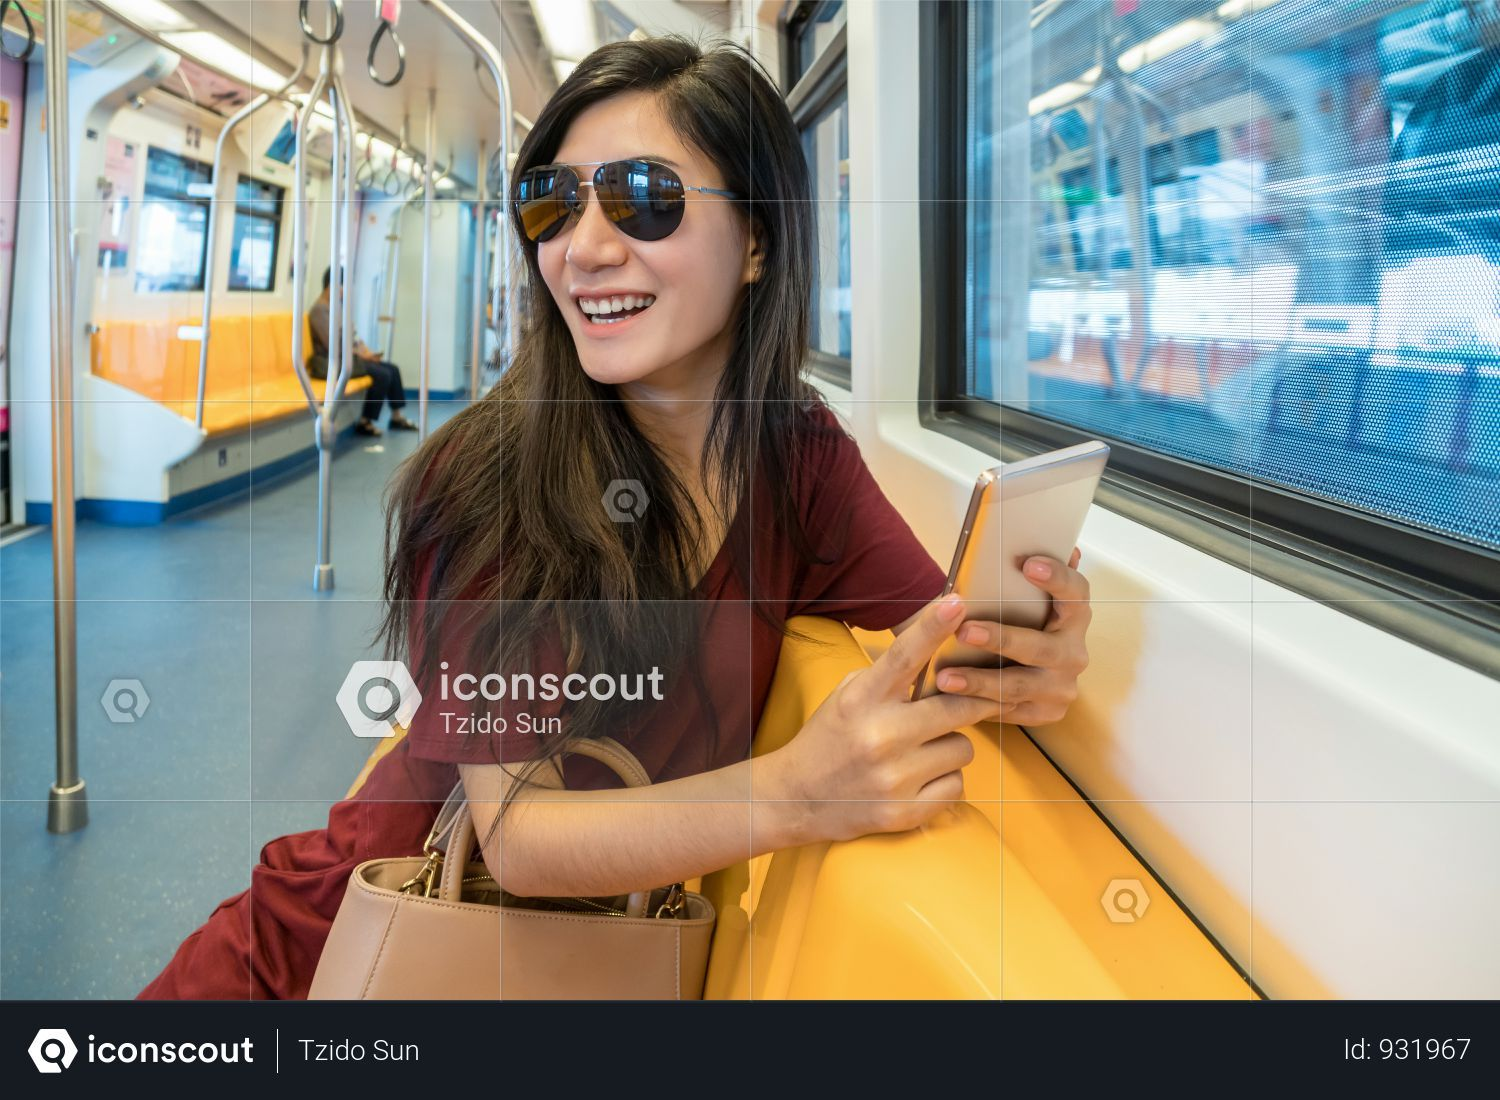 Premium Asian Woman Passenger Using The Smartphone In Mrt Subway For Travel In The Big City Photo Download In Png Jpg Format Asian Woman City Photo Photo